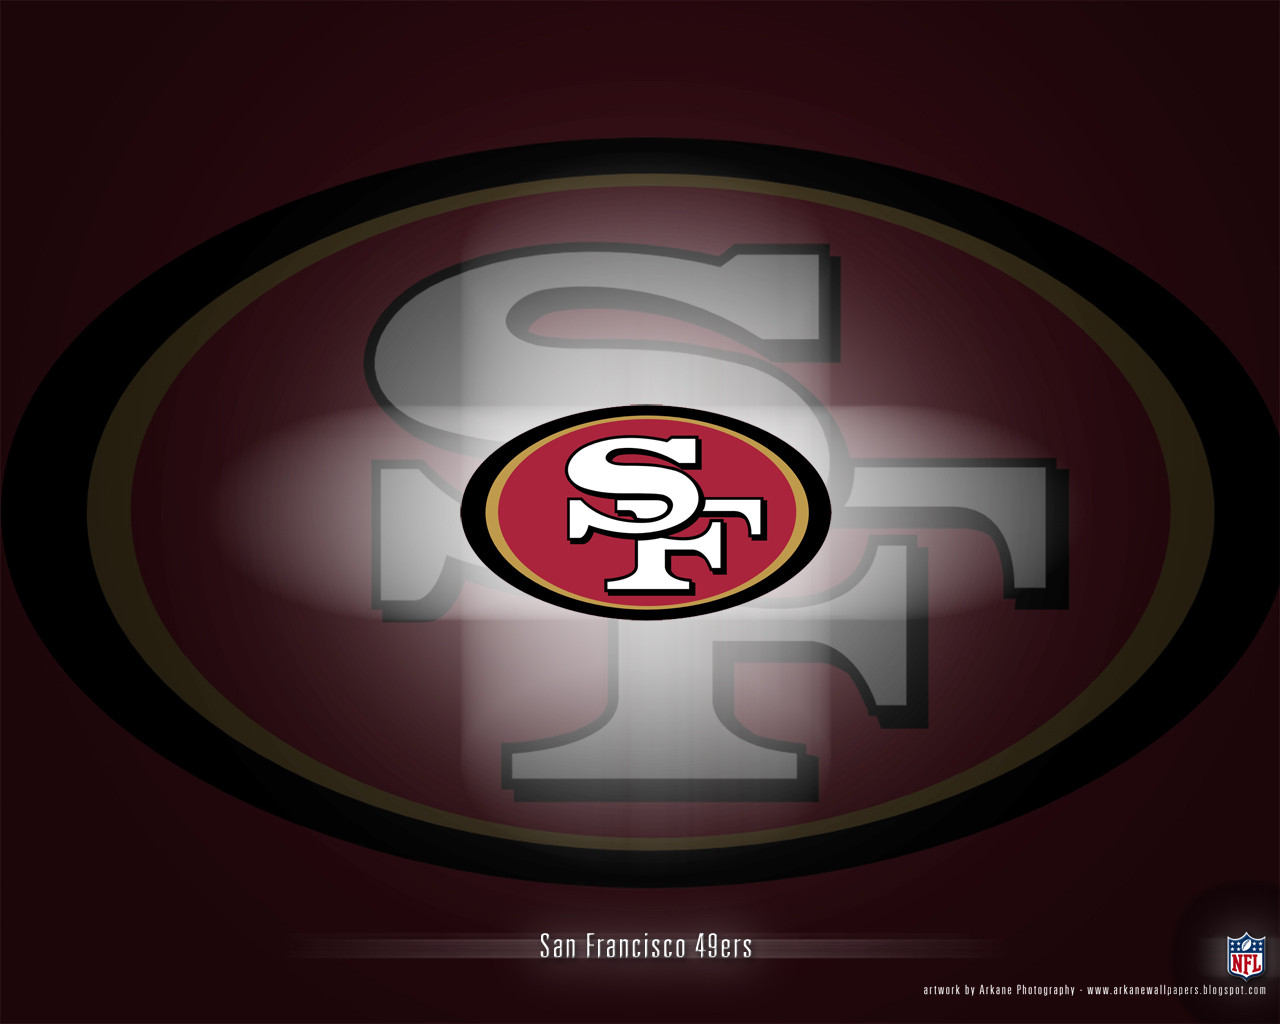 San Francisco 49ers wallpapers San Francisco 49ers background 1280x1024